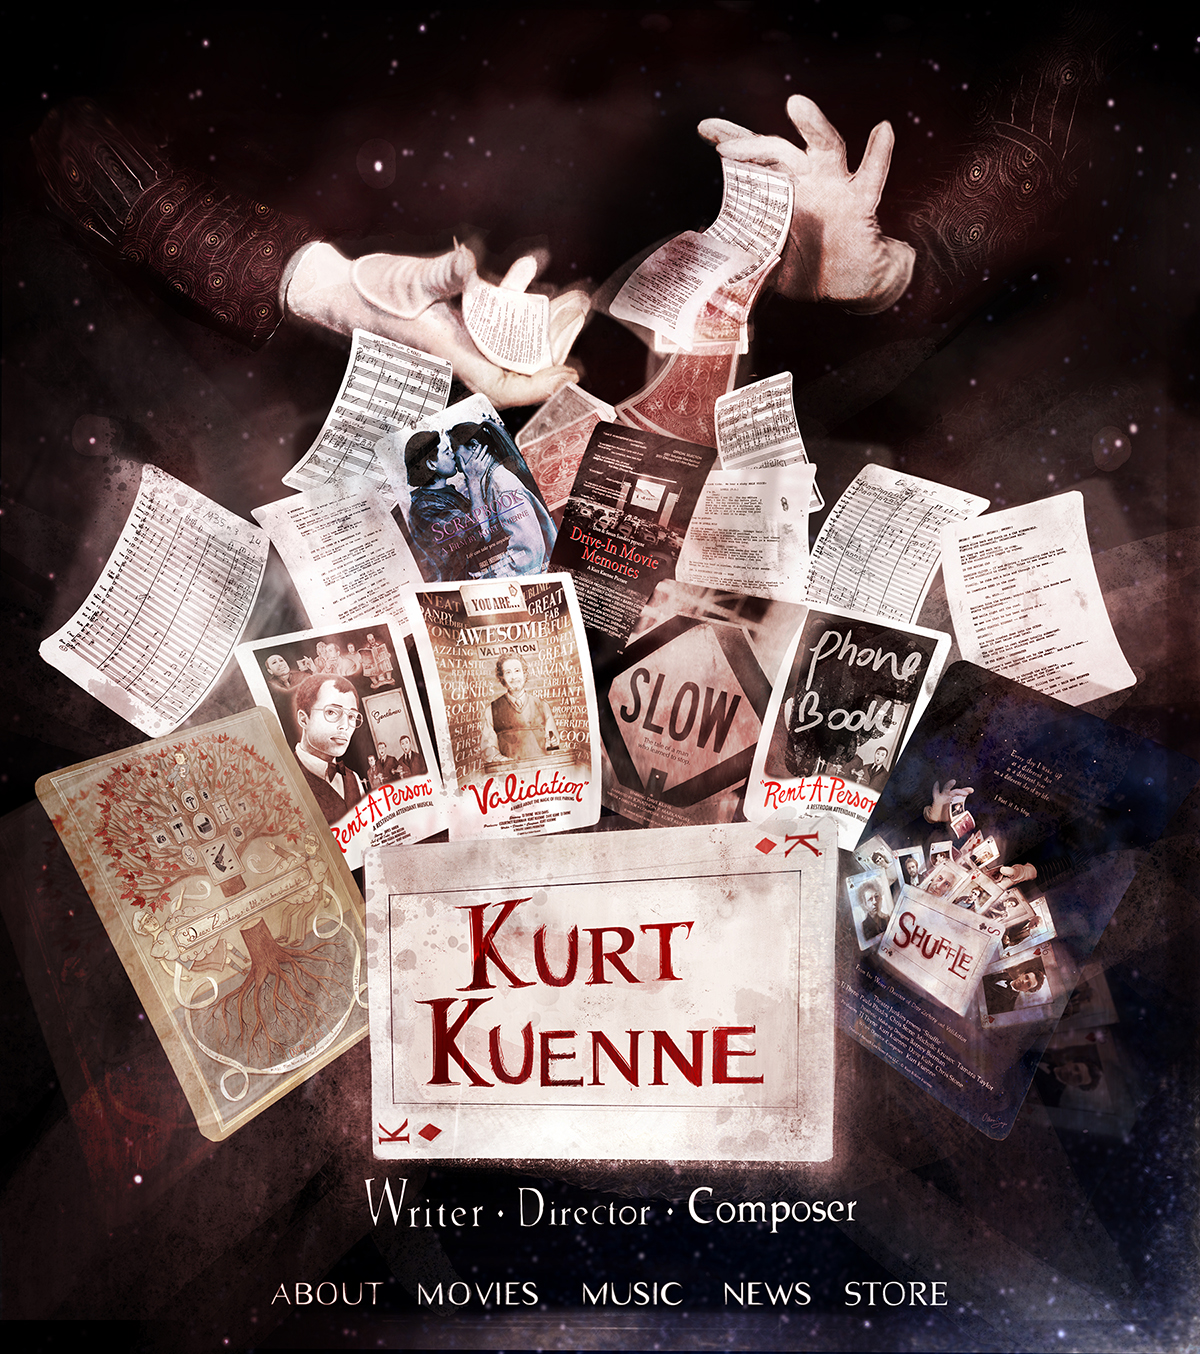 Kurt Kuenne's Website